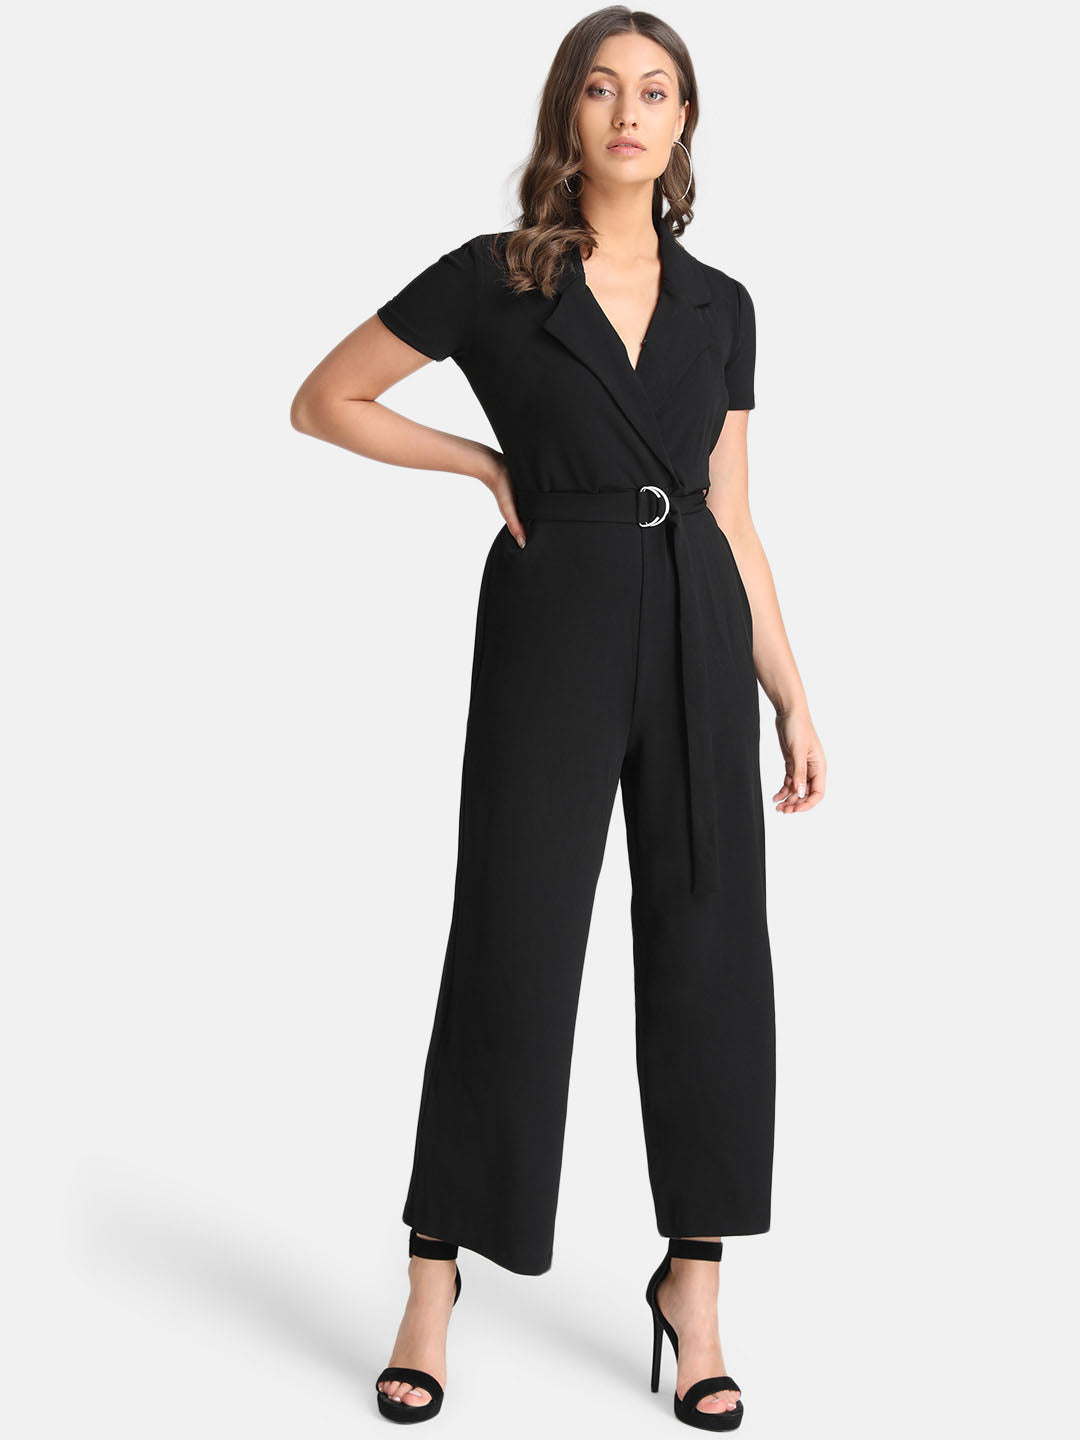 Front Overlap Detail Jumpsuit With Belt At Waist